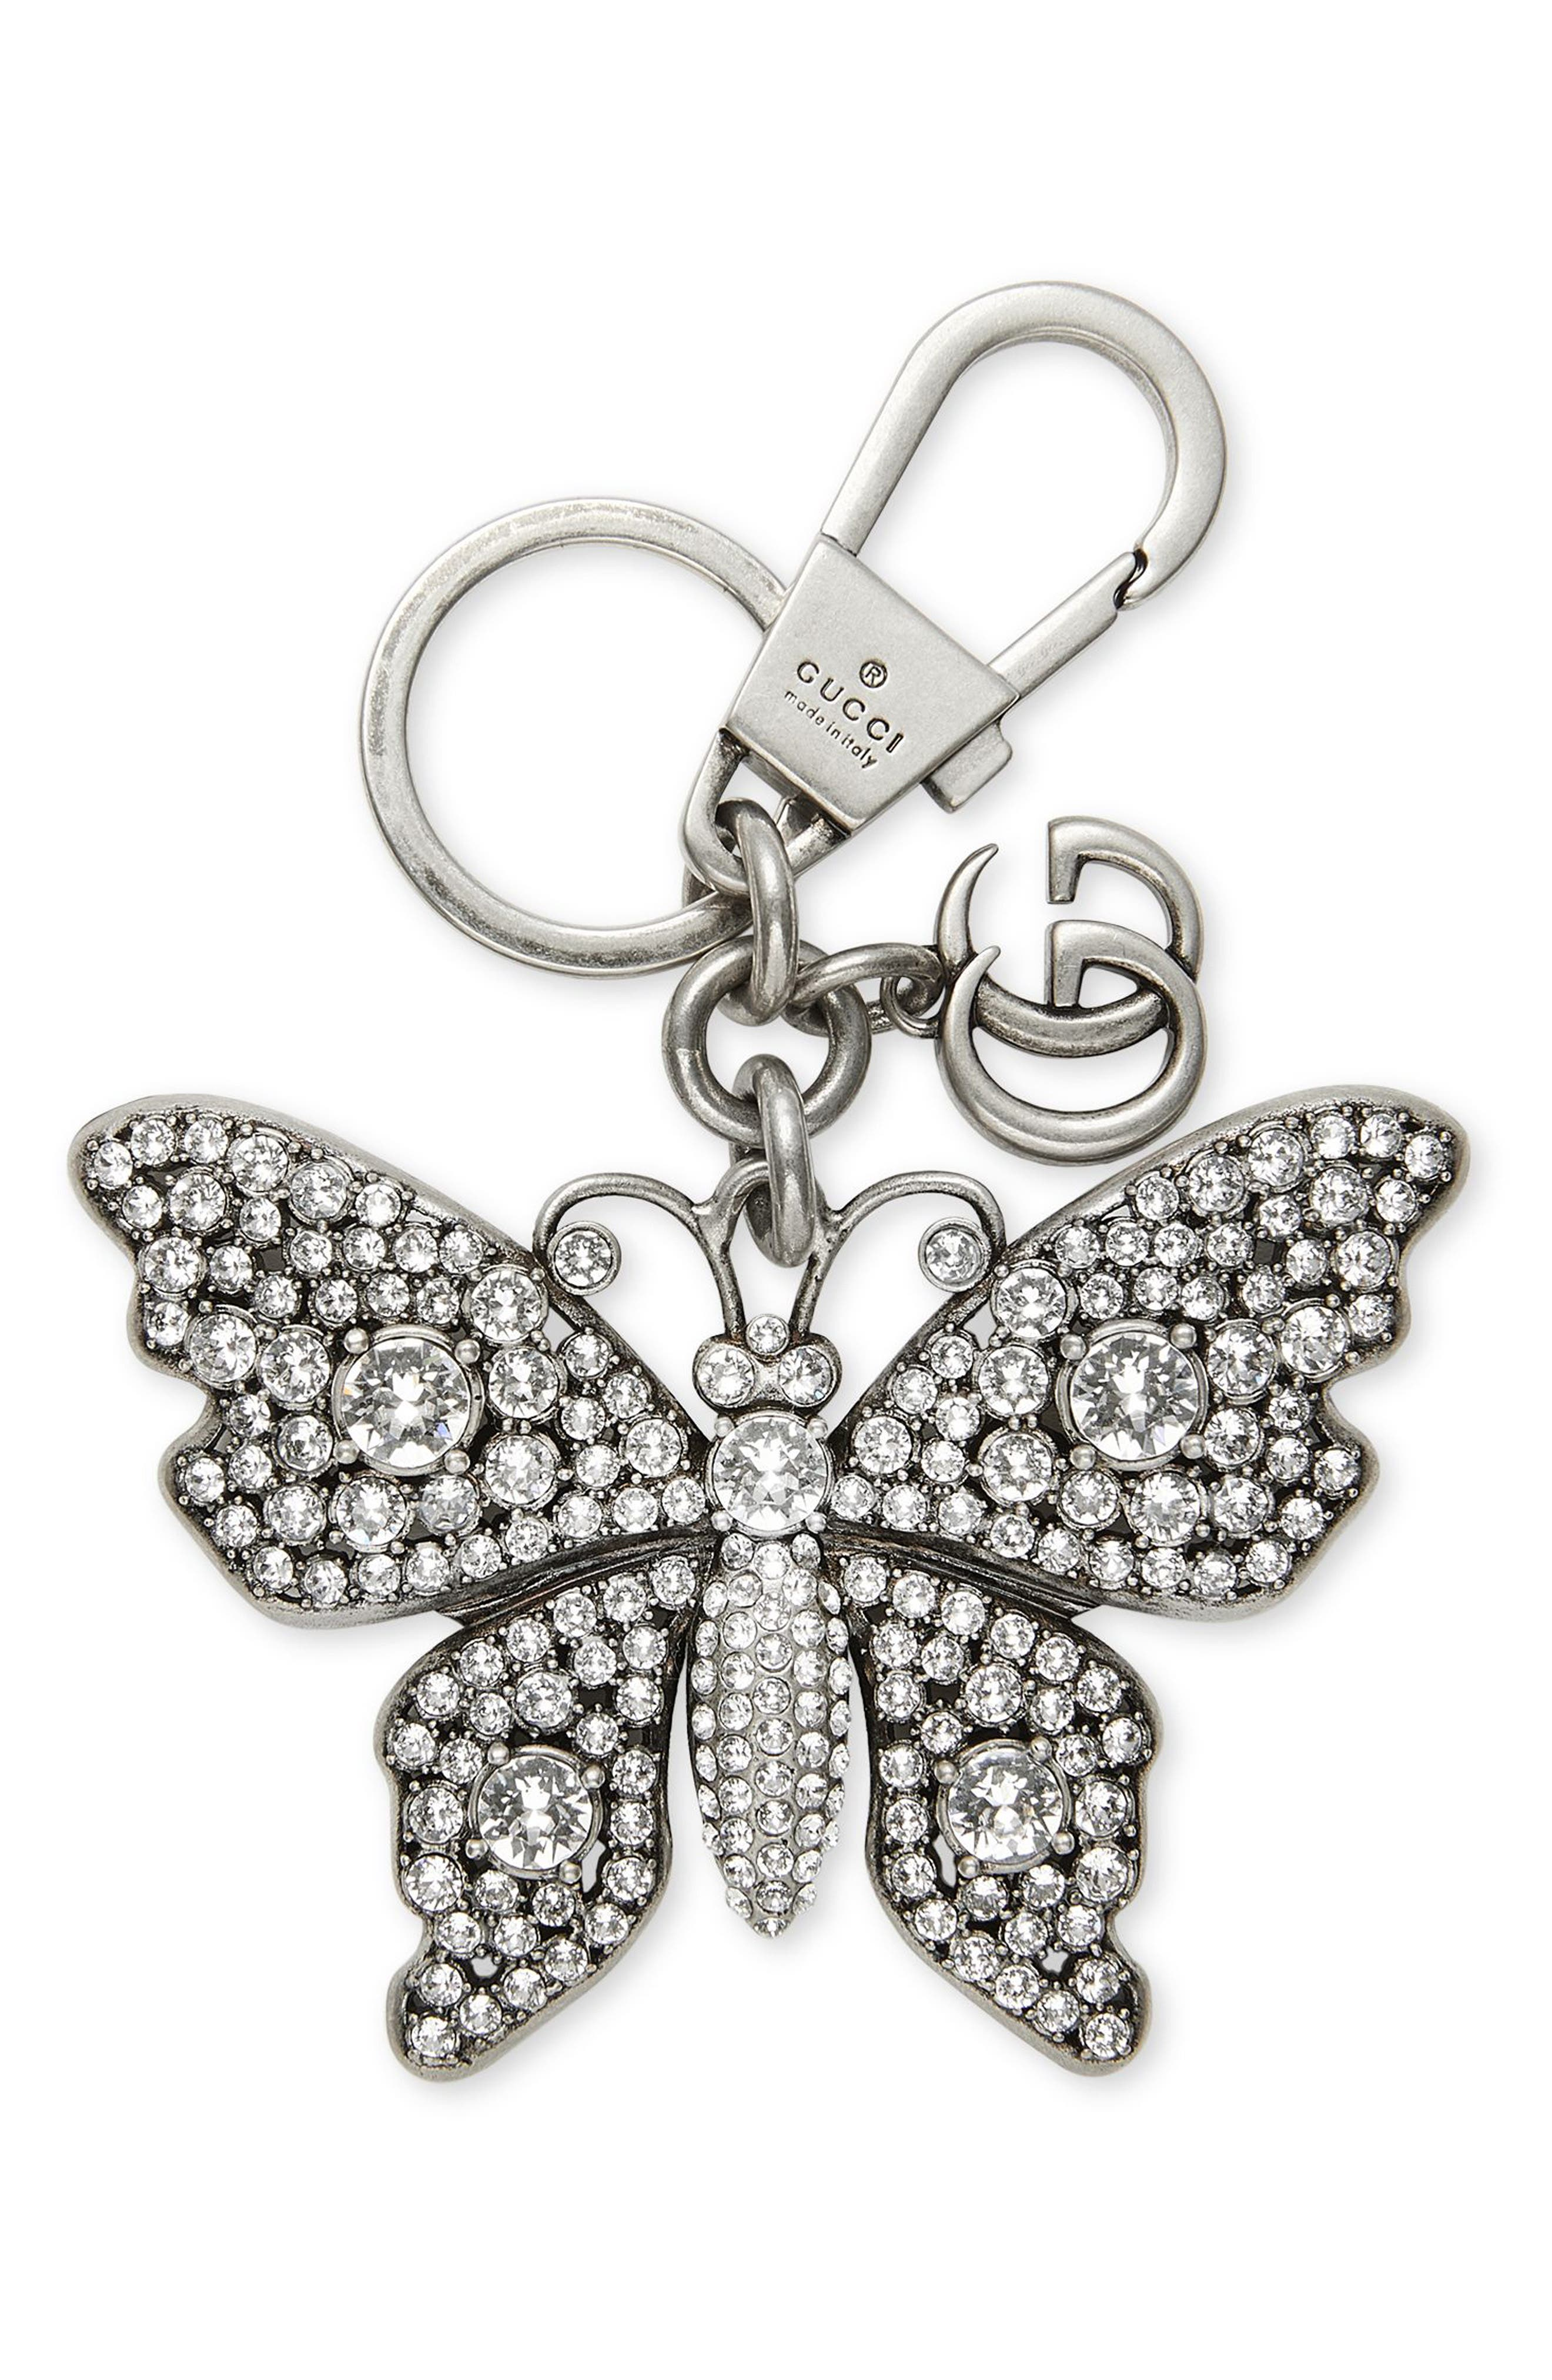 Gucci Crystal Butterfly Bag Charm